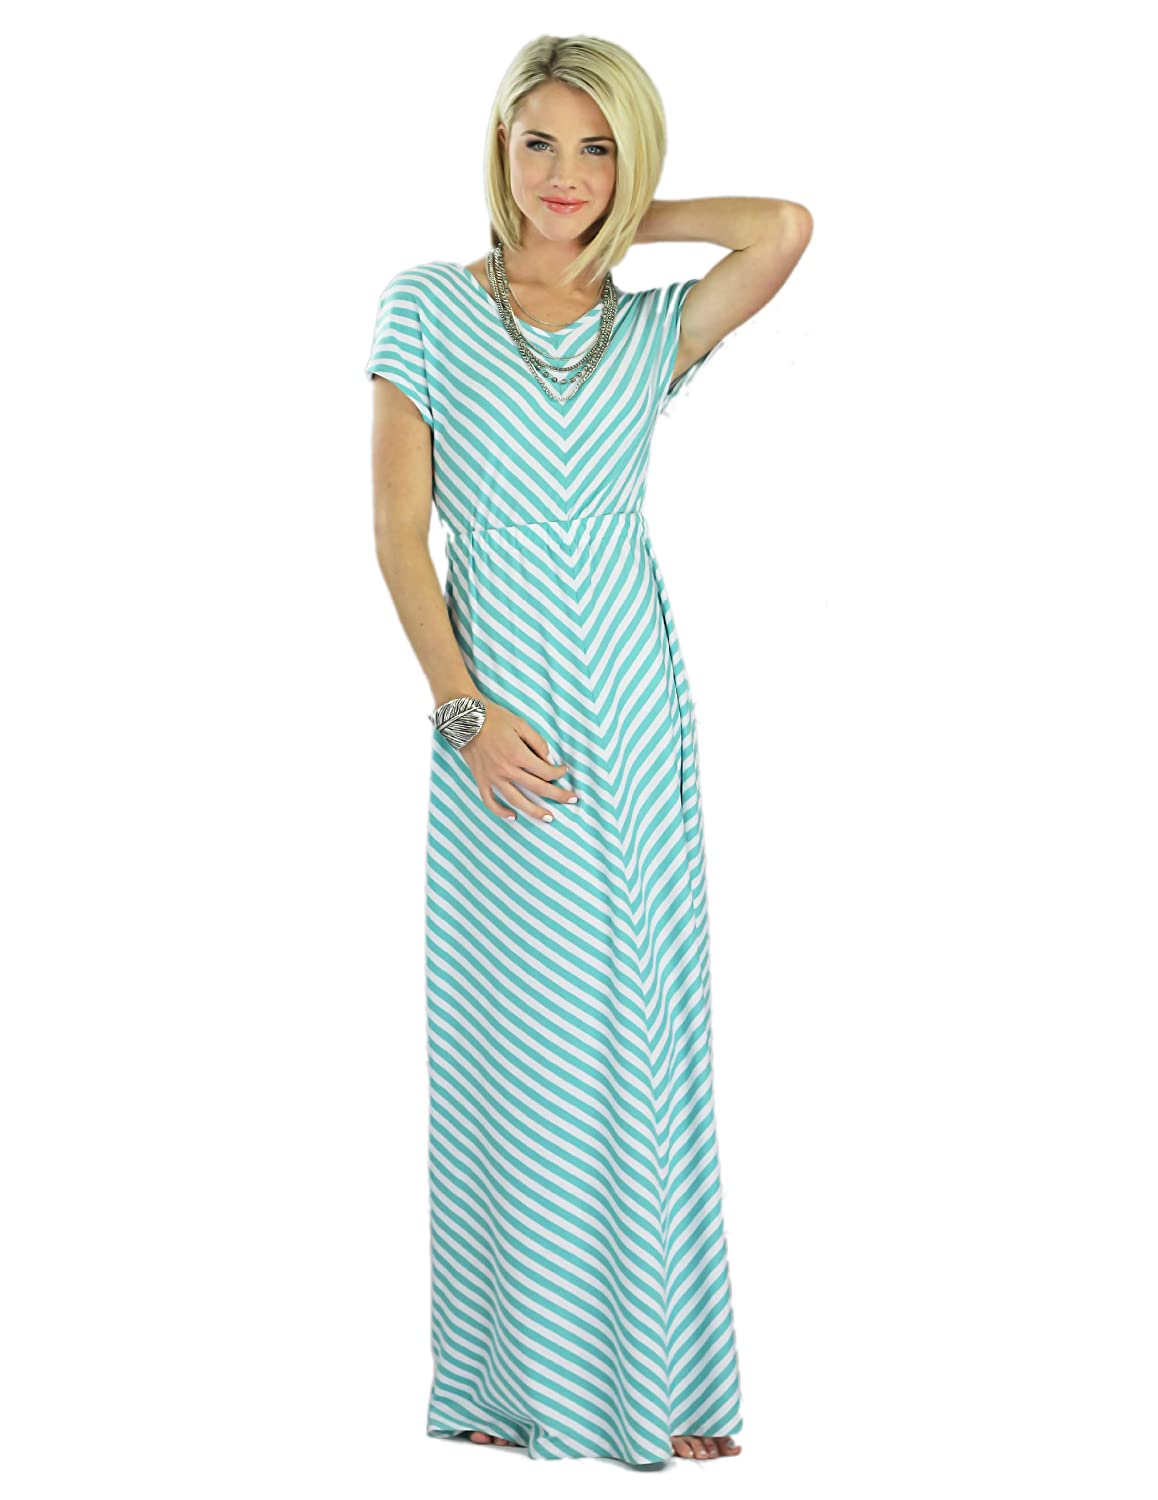 Sleeved Maxi Dresses